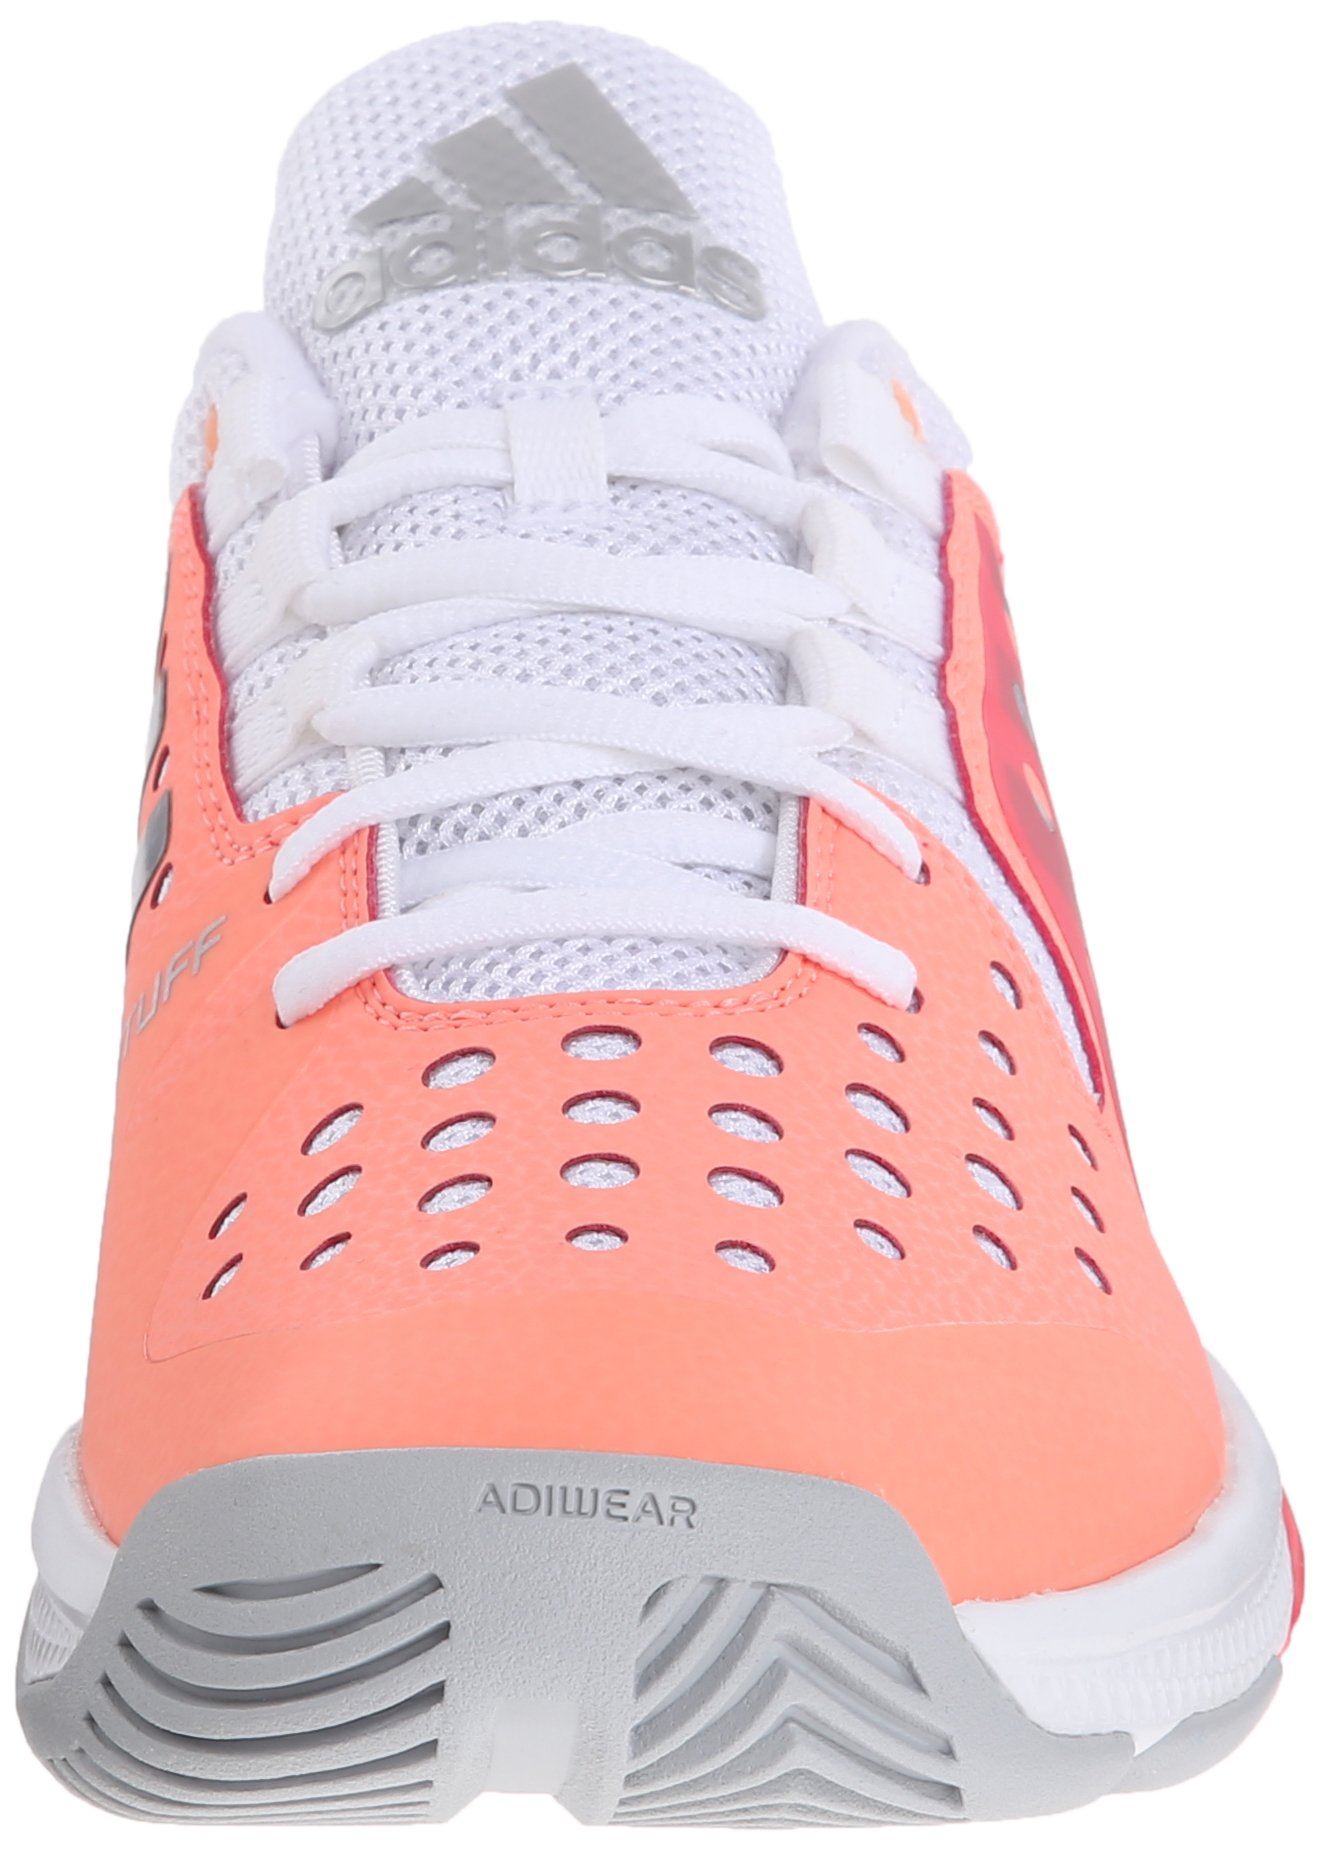 adidas Performance Women's Barricade Classic Bounce W Training Footwear,Sun Glow Yellow/Metallic Silver/Shock Red,9.5 M US by adidas (Image #4)